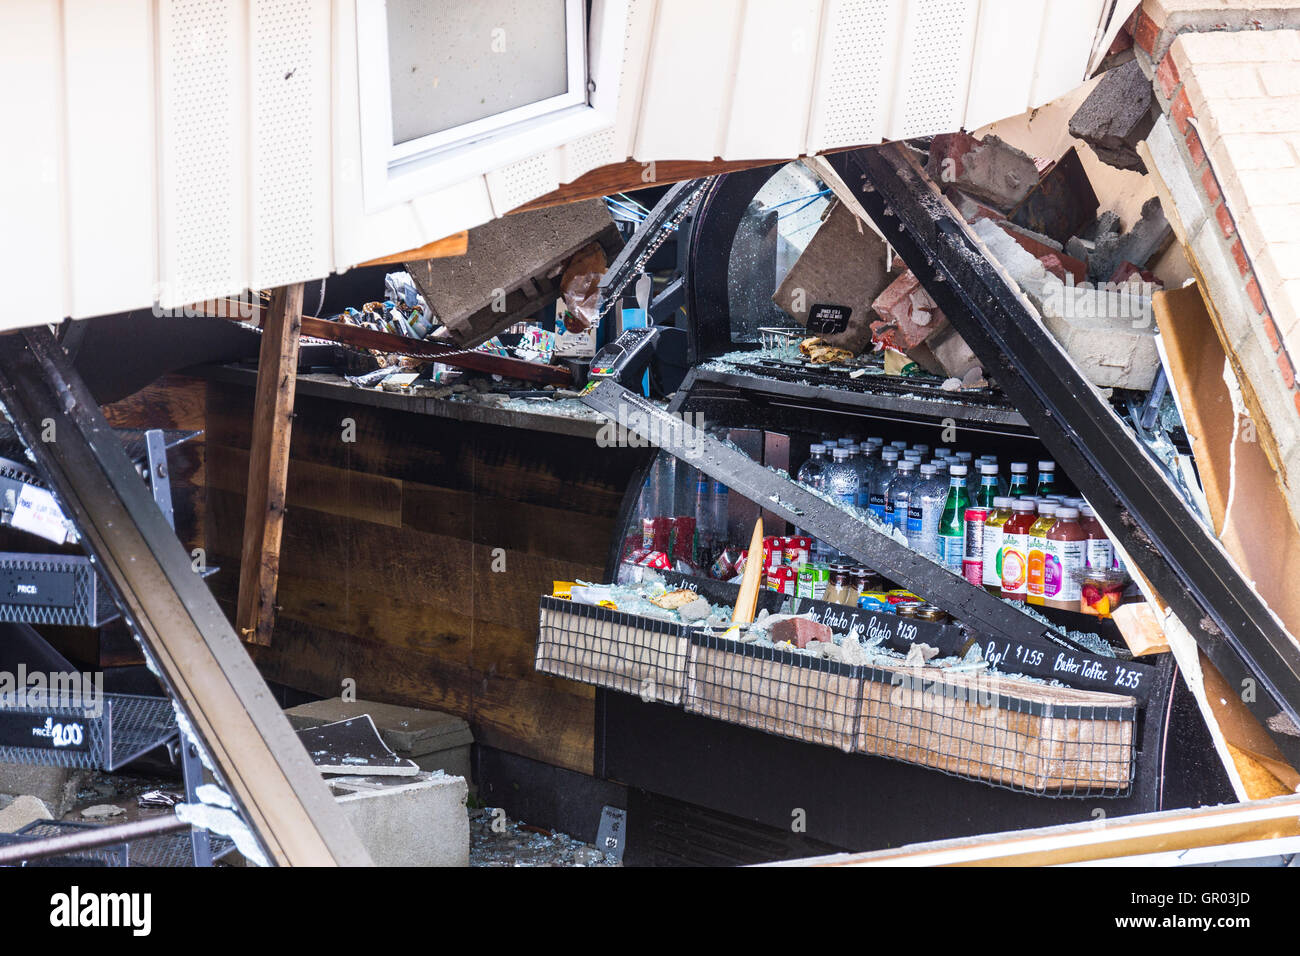 Kokomo - August 24, 2016: Several EF3 tornadoes touched down, one of which destroyed a local Starbucks 9 - Stock Image